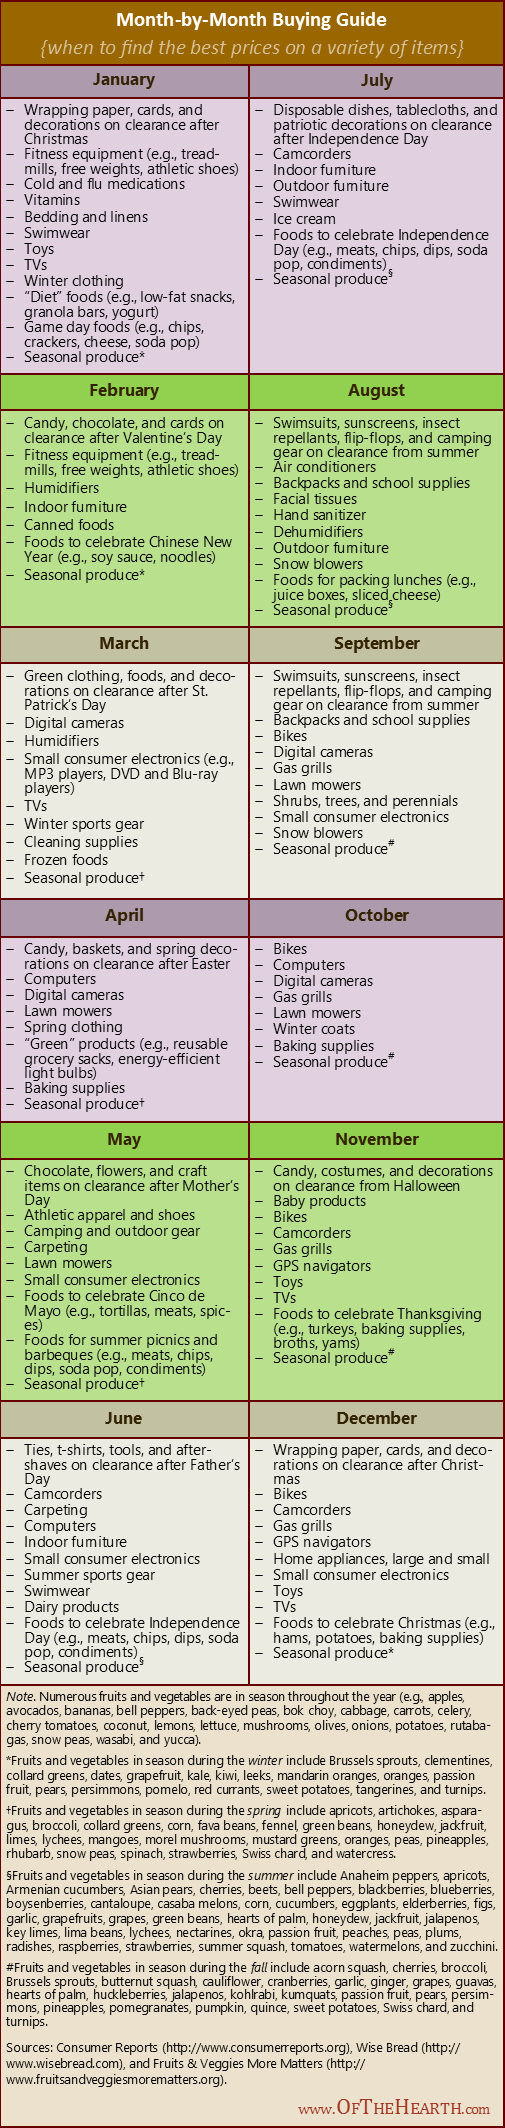 Month-by-Month Buying Guide | The prices on many products fluctuate throughout the year. Here's a month-by-month buying guide so you'll know when to find low prices on a variety of items.